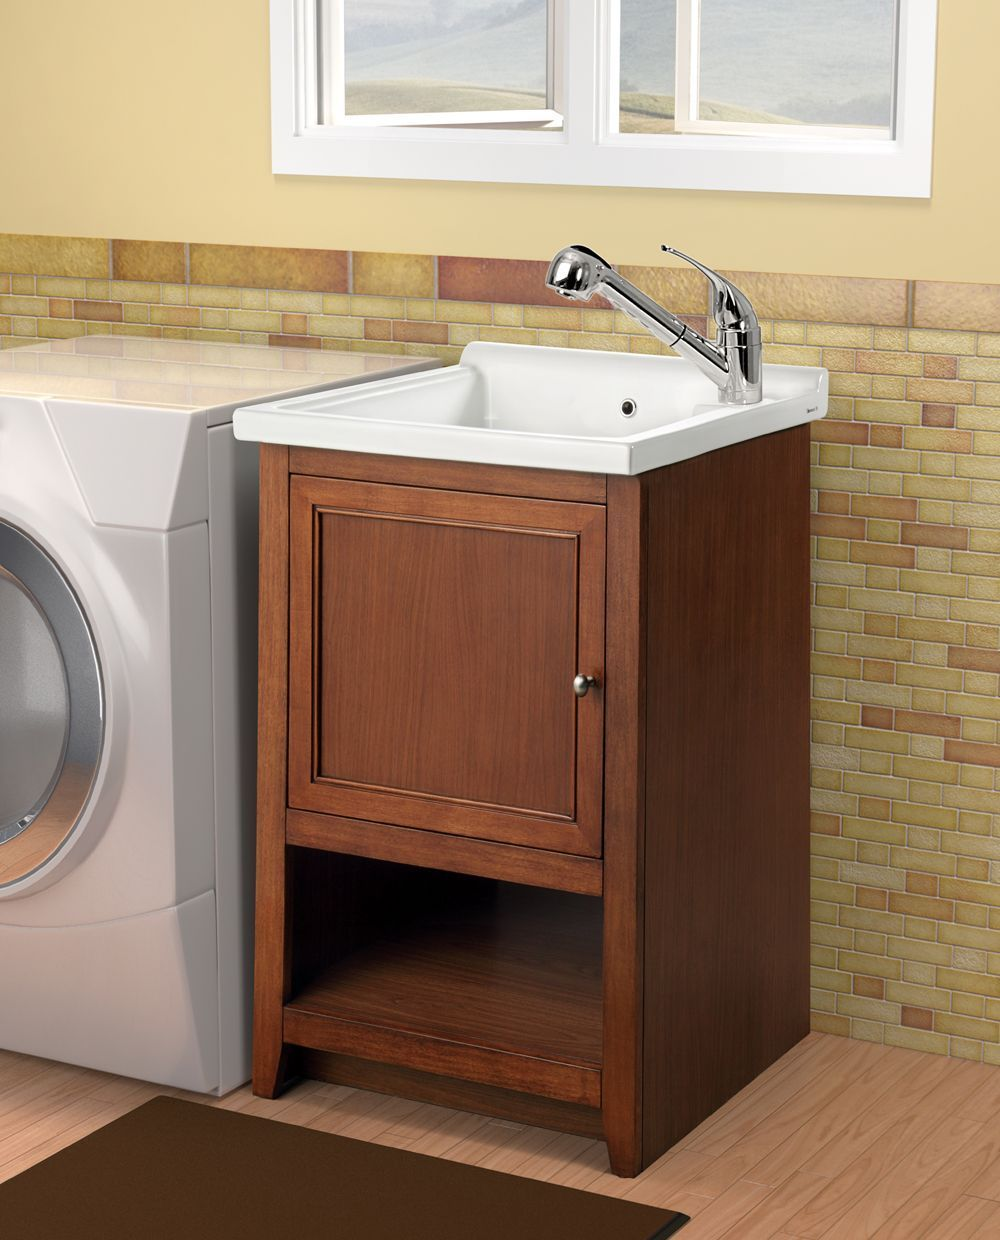 home depot sinks laundry guide at home